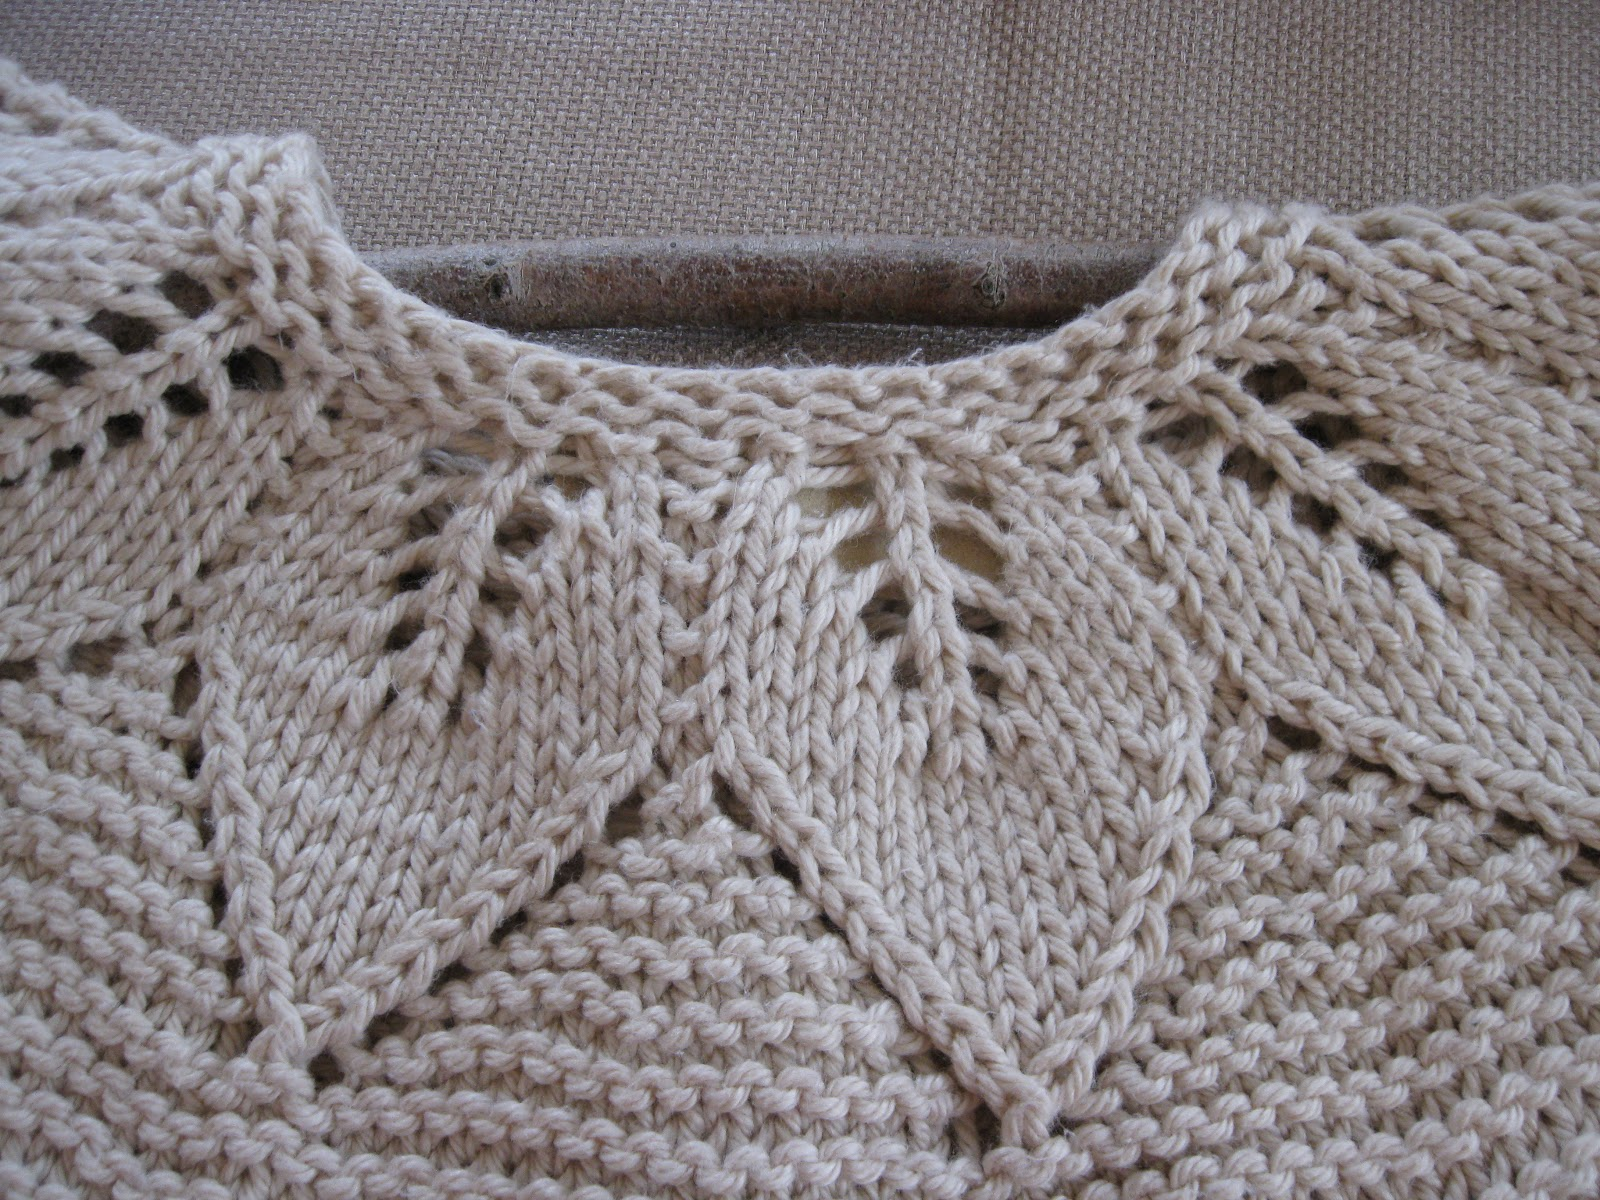 How To Knit A Leaf Pattern : Of Wool and Loveliness: DIY Crystal Chandelier and a Lacy Leaf Baby Sweater